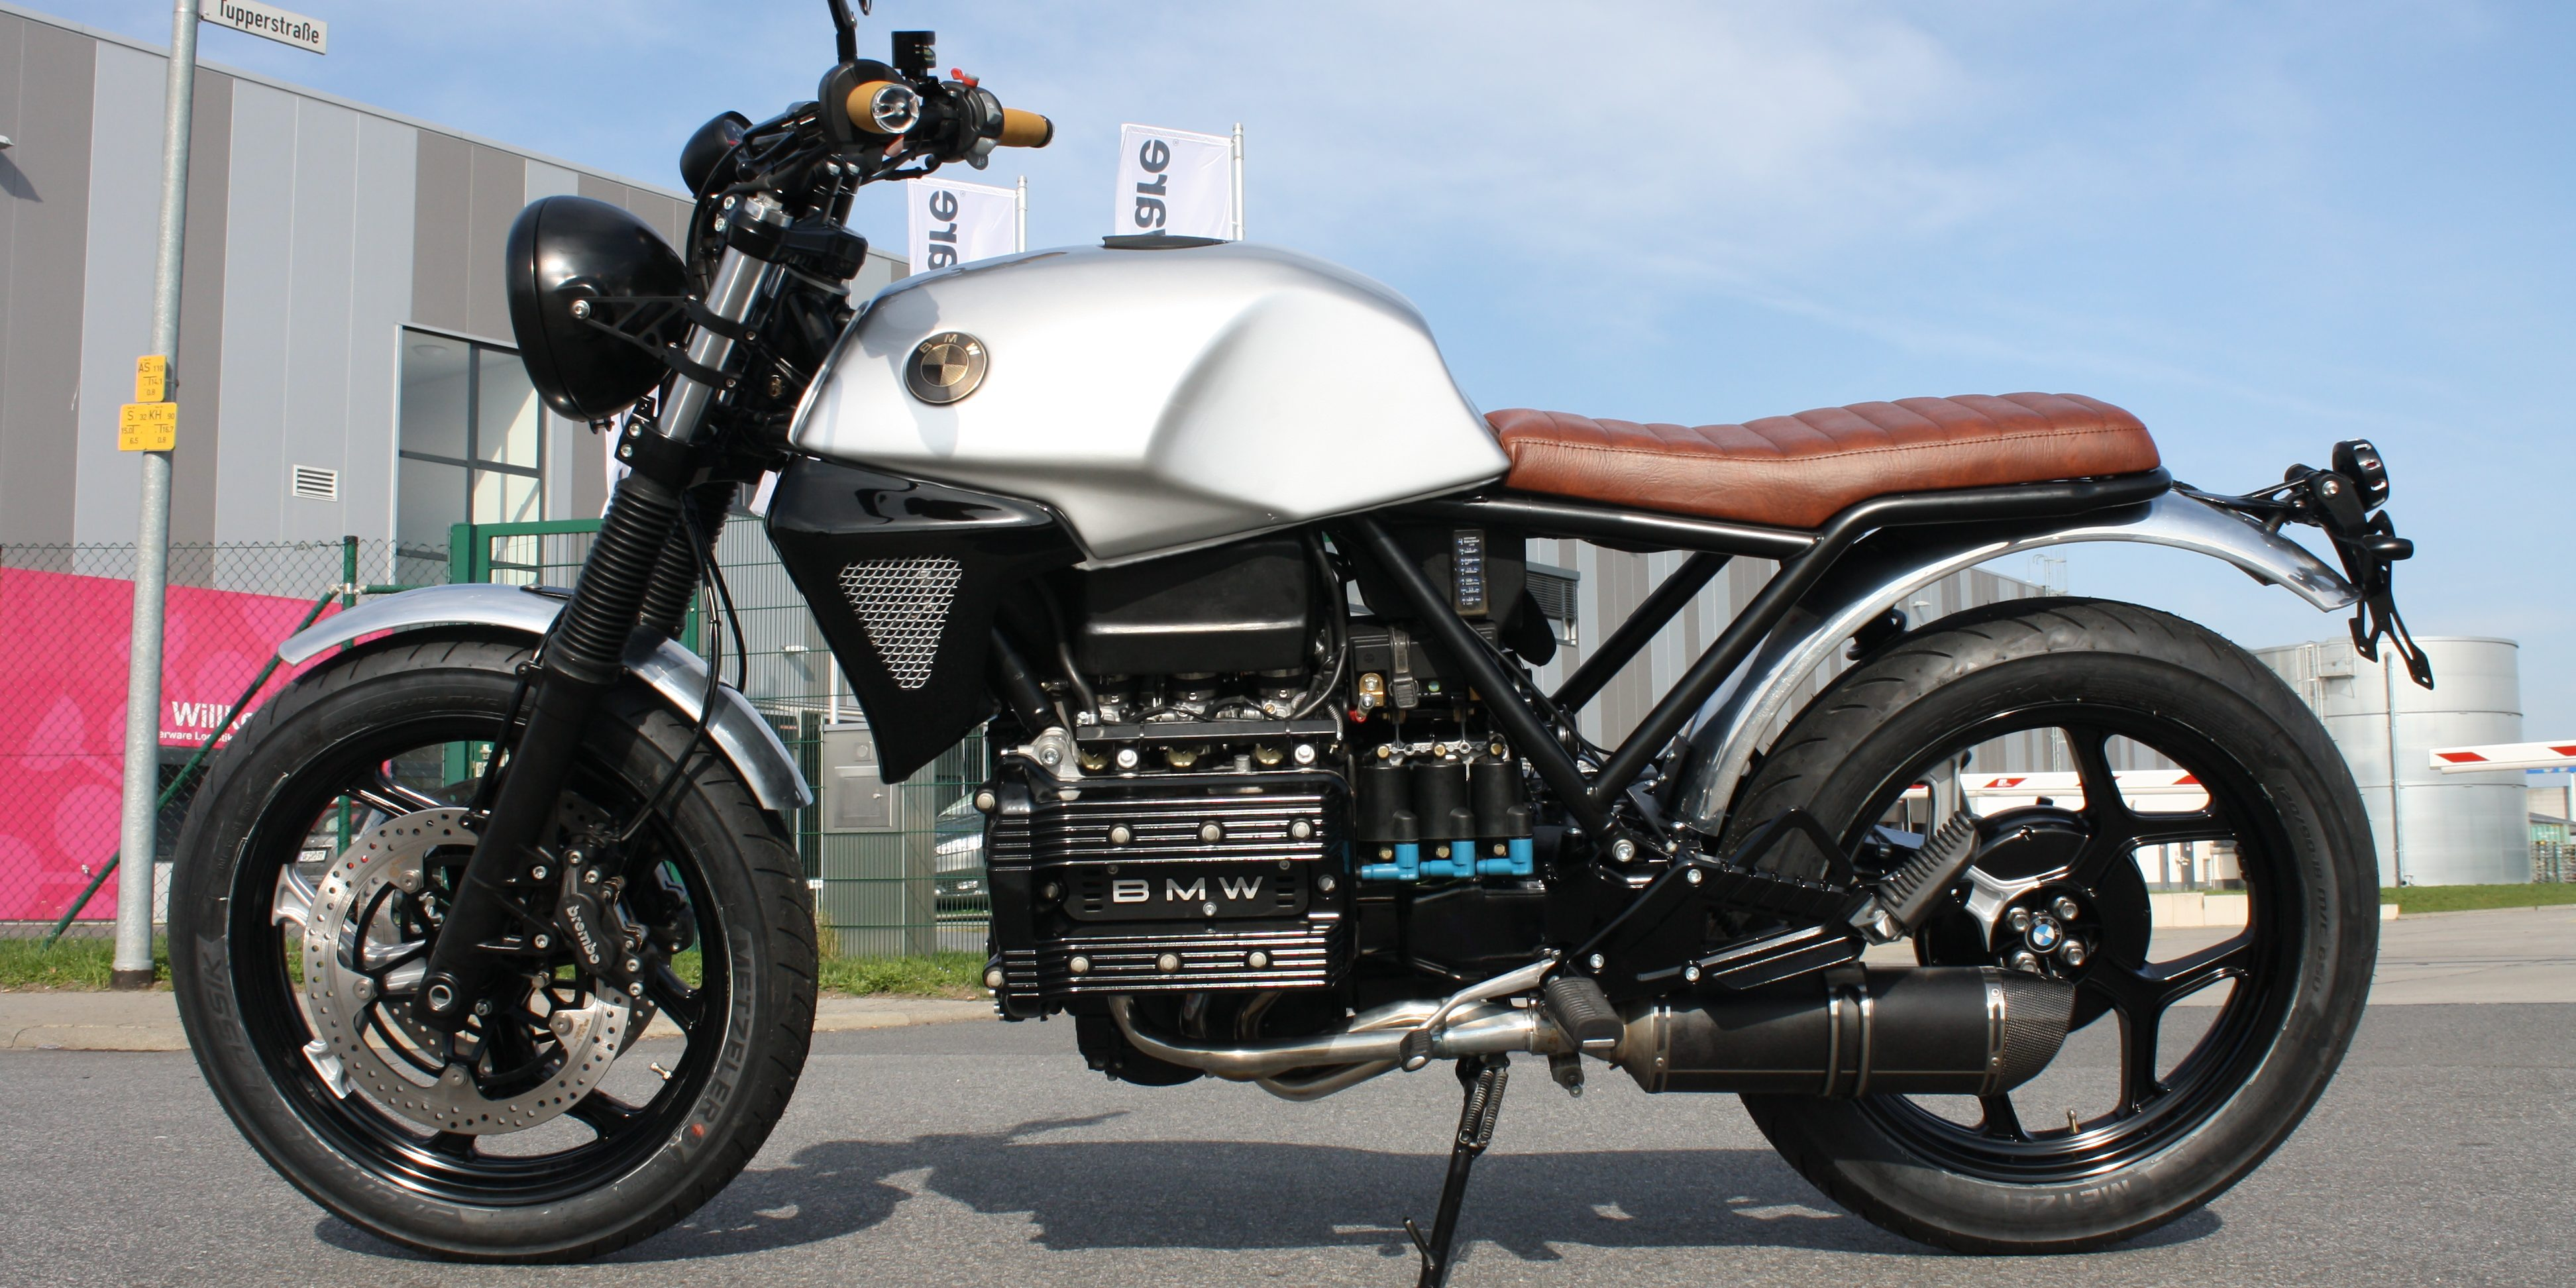 bmw k75 pure scrambler. Black Bedroom Furniture Sets. Home Design Ideas